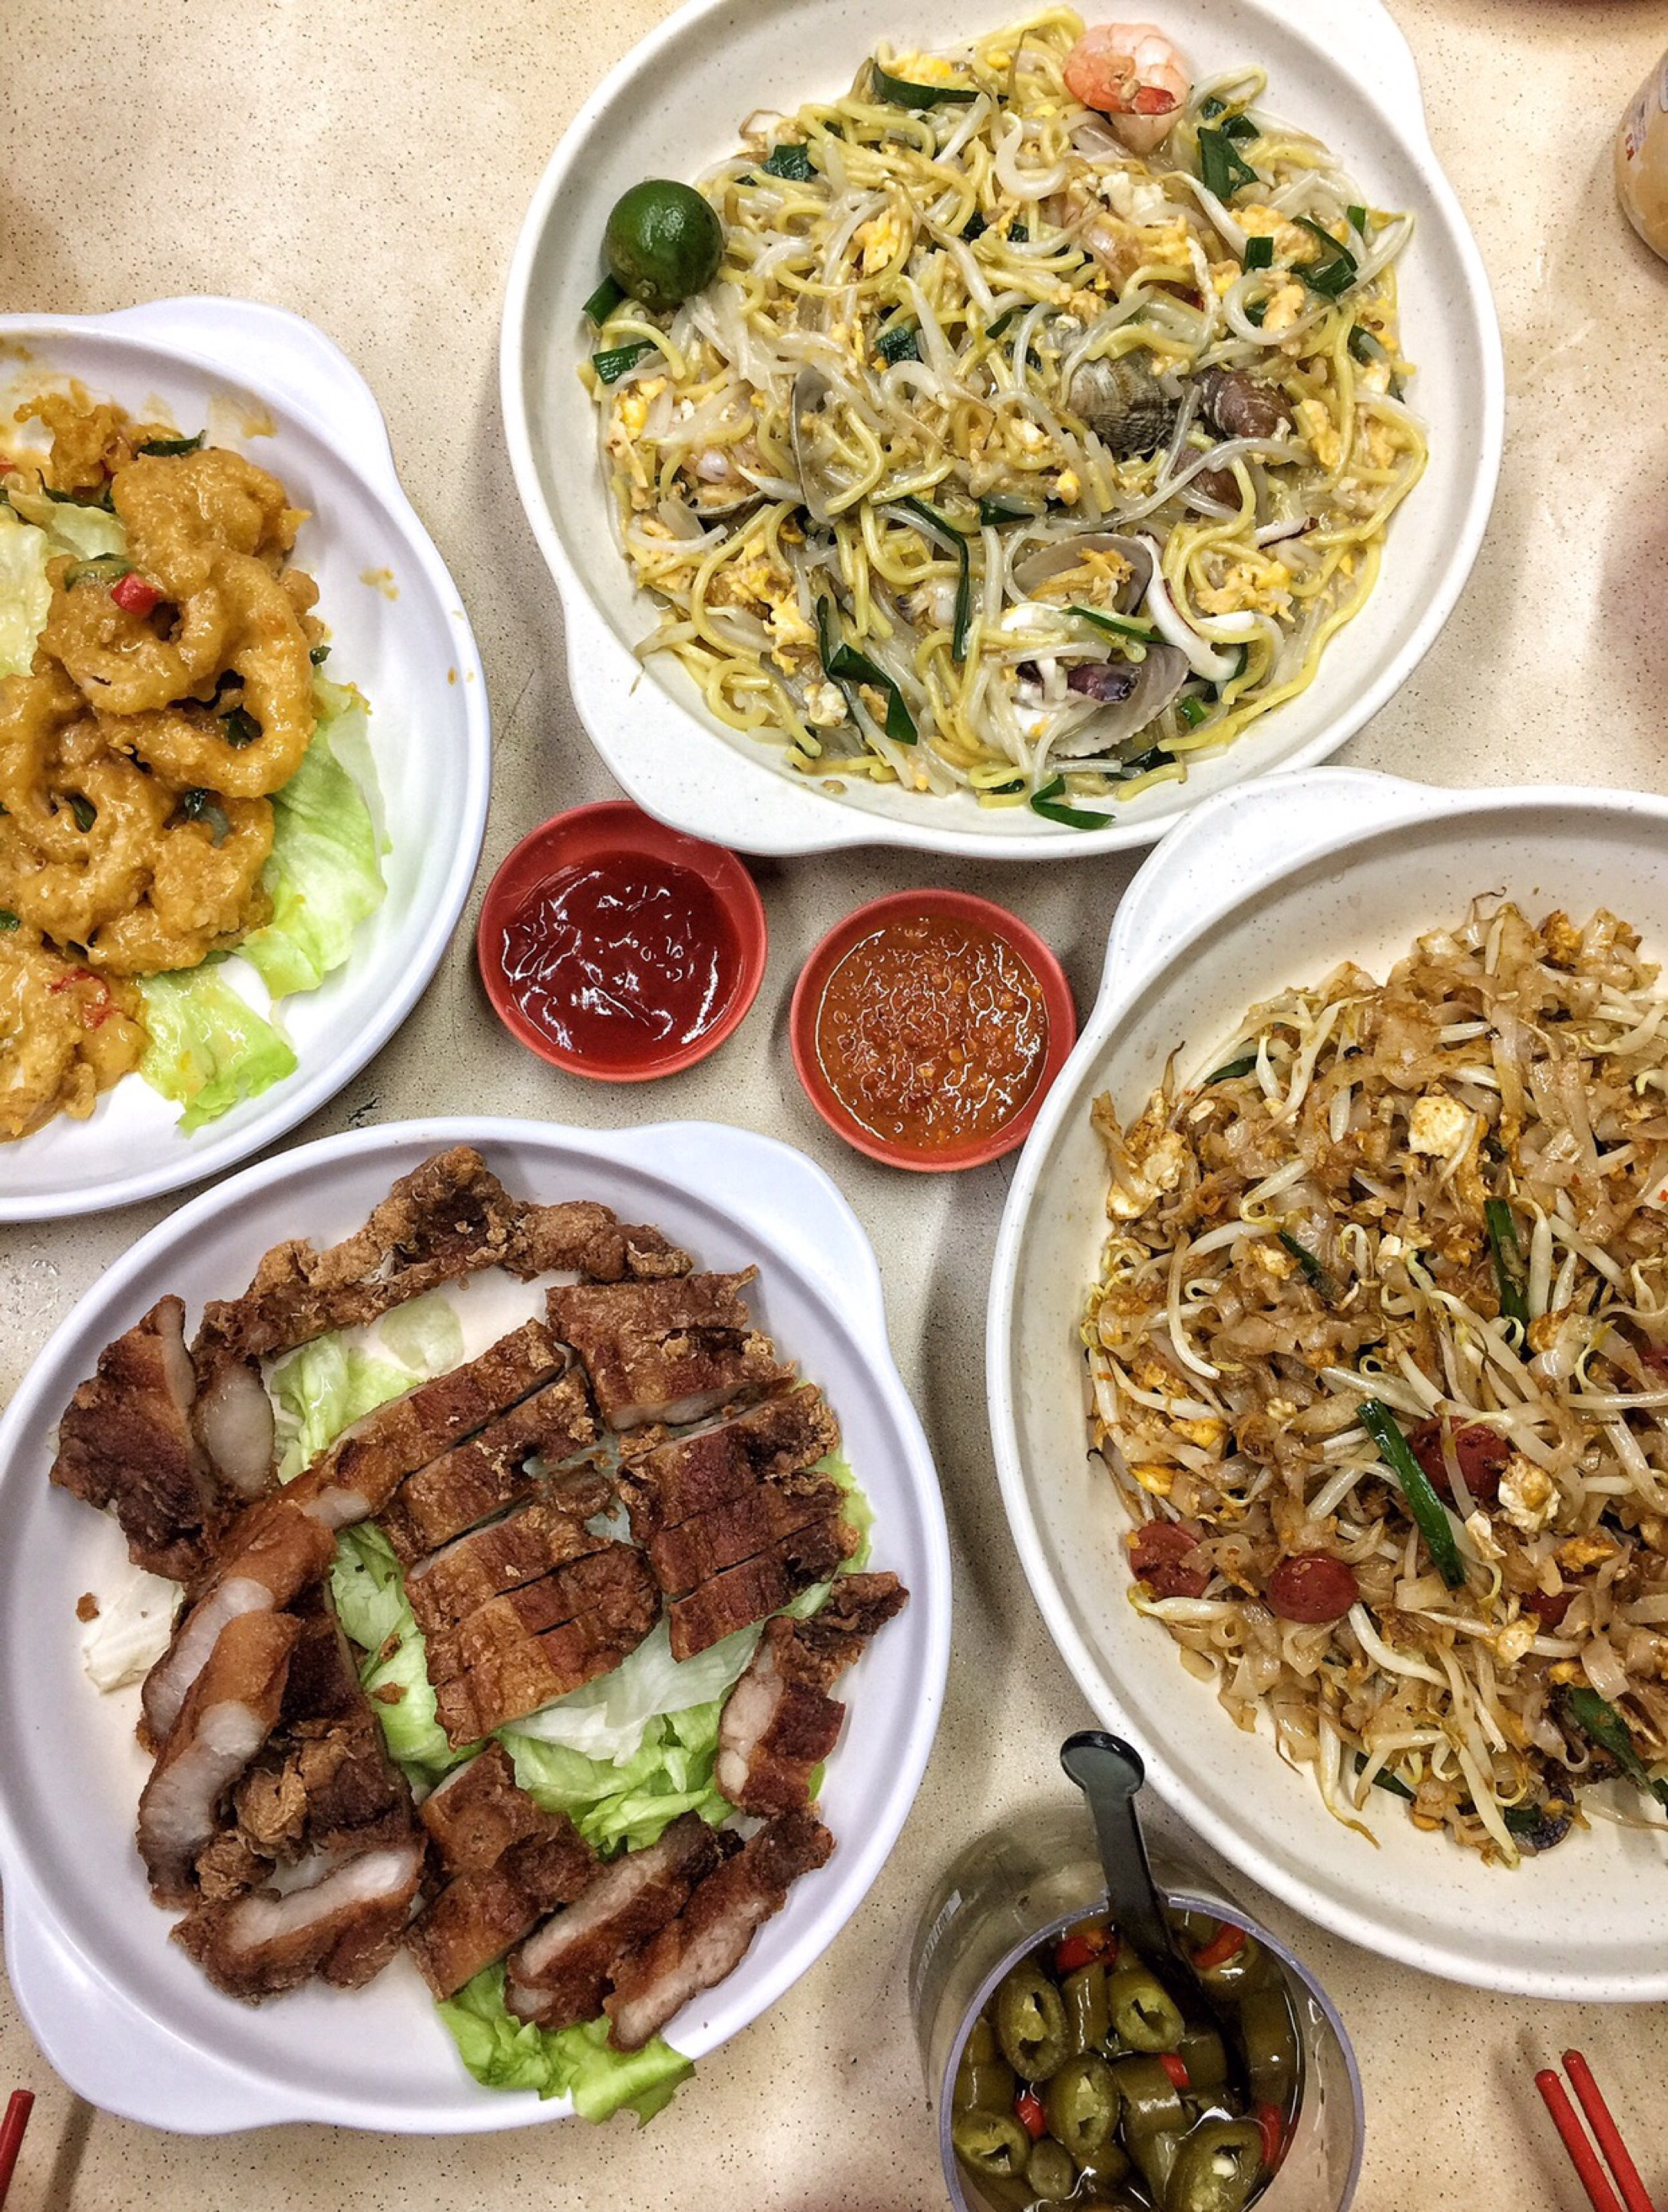 Lala Hokkien Mee ($8) > Penang Fried Kway Teow (from $7.50) + Fermented Pork Belly ($12)